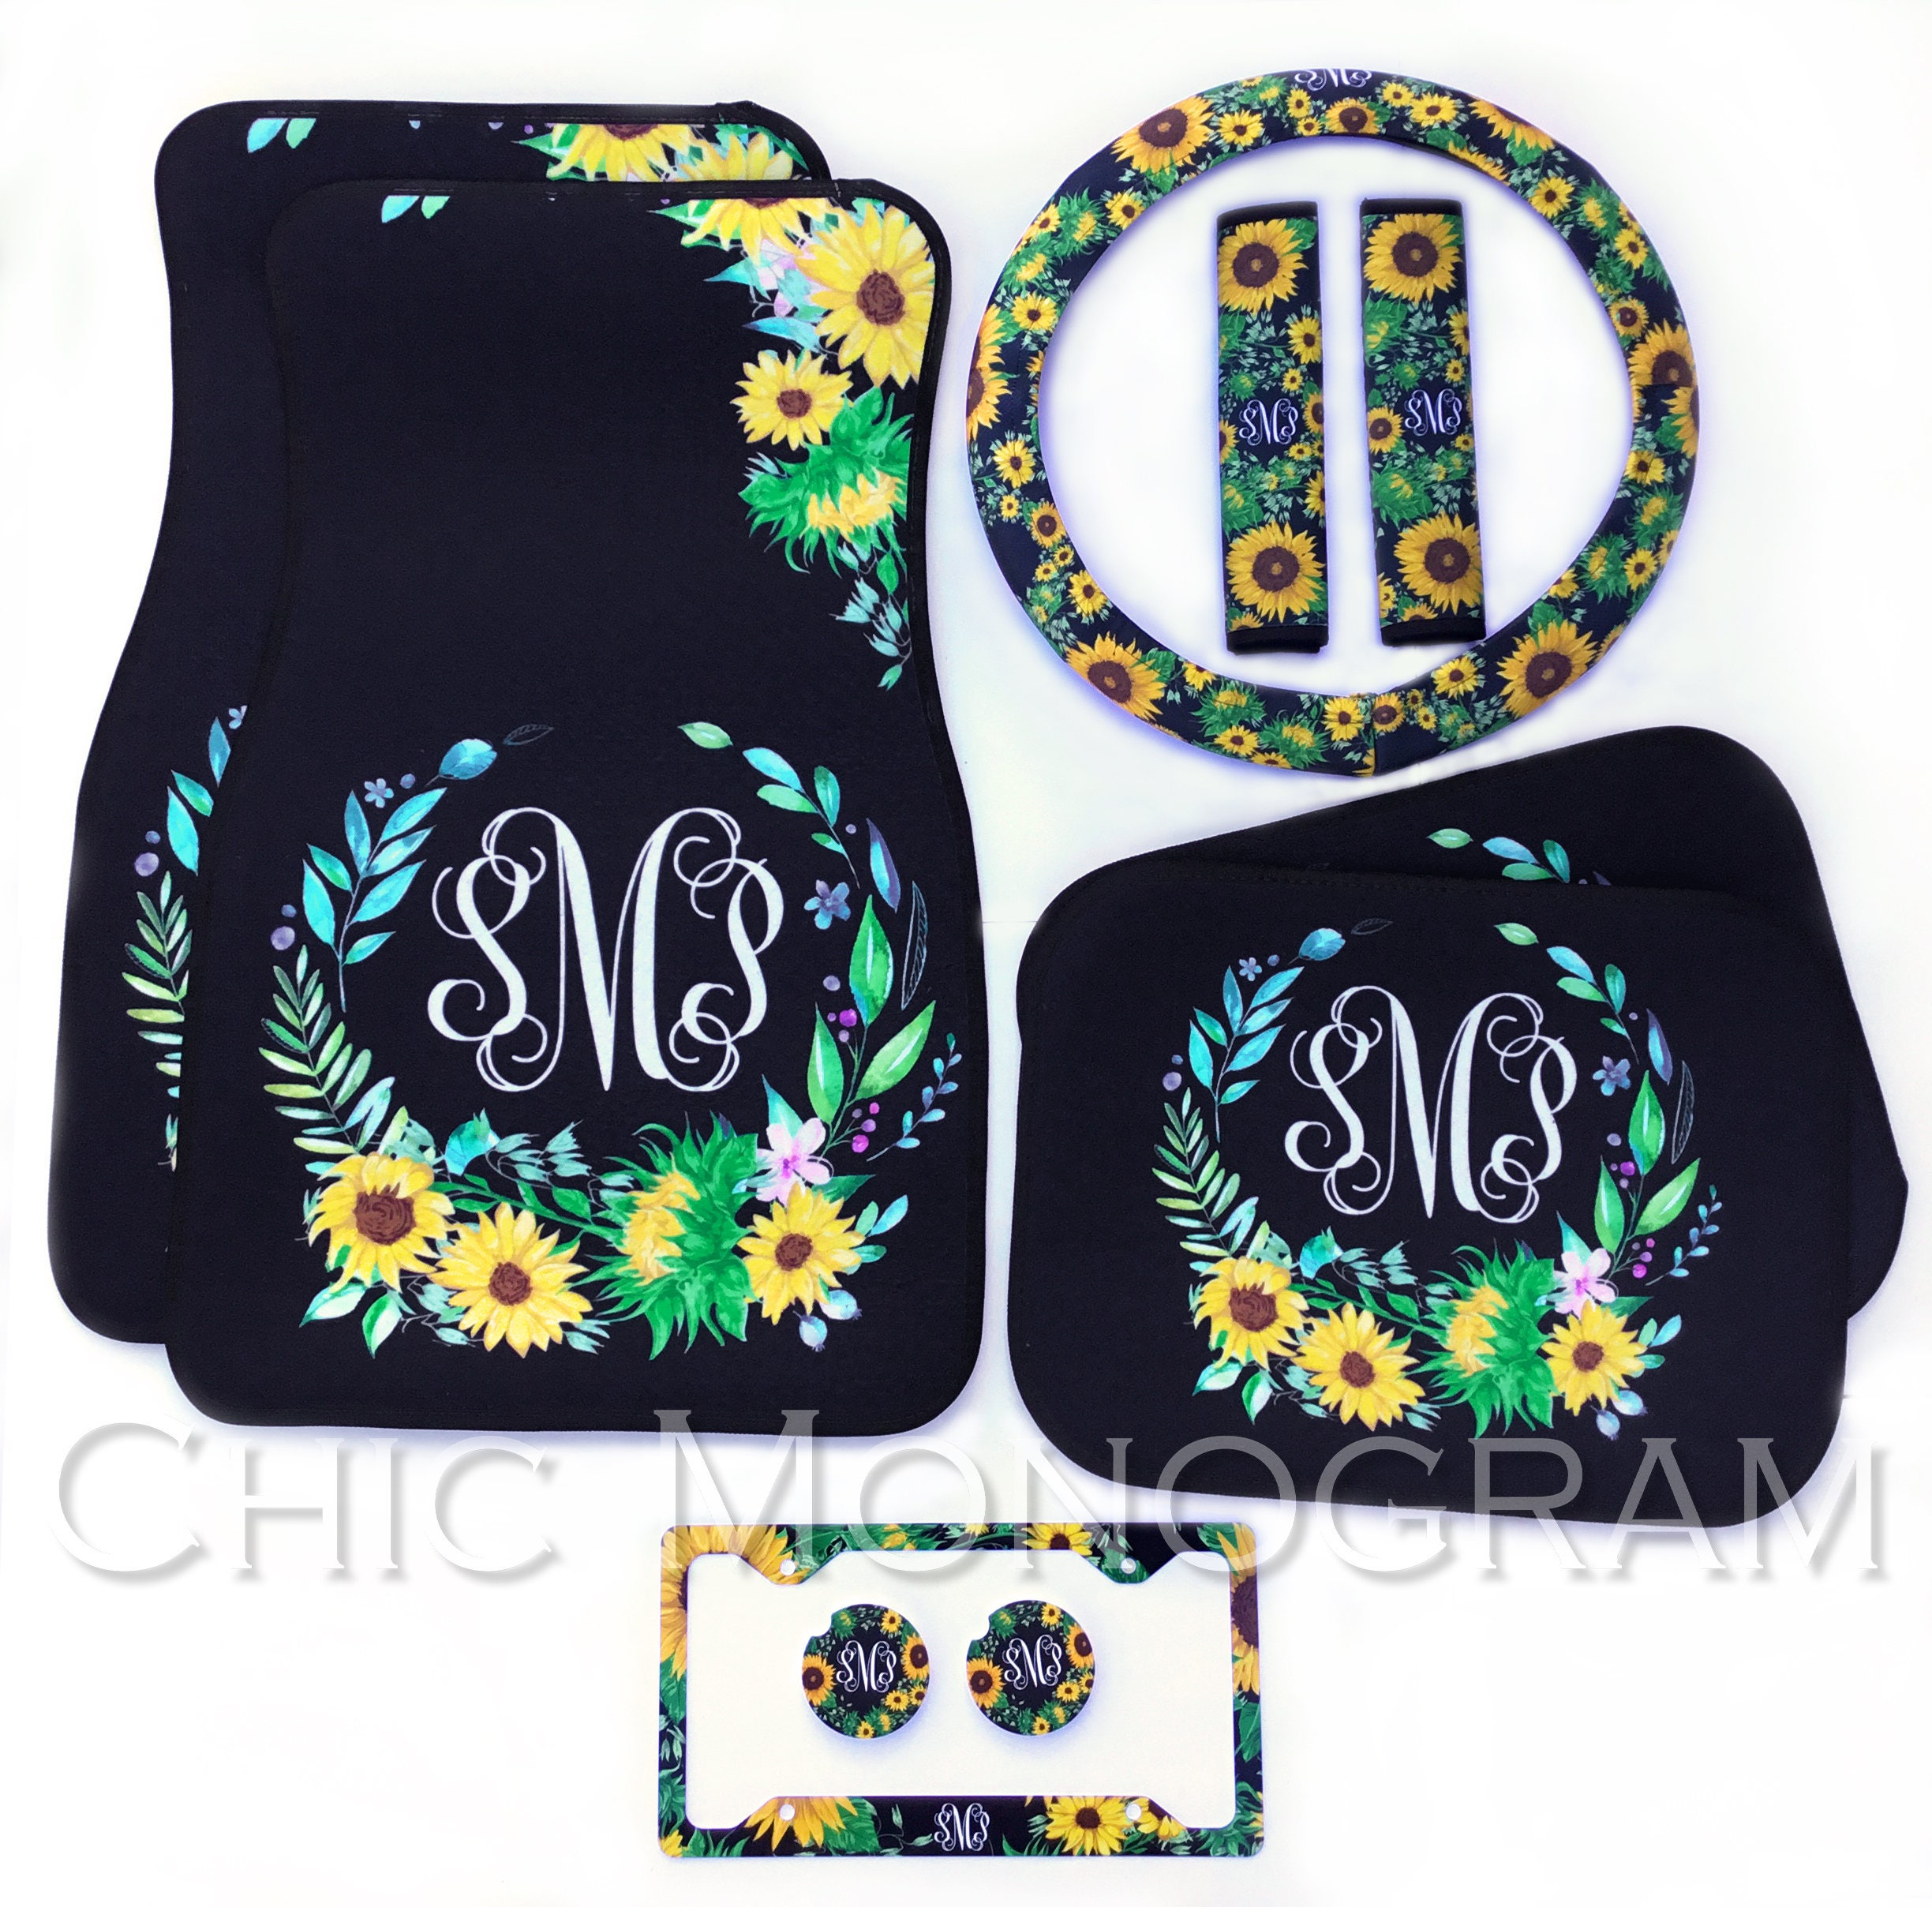 Monogrammed Floor Mats >> Sunflower Car Accessories Set Monogrammed Car Floor Mats ...